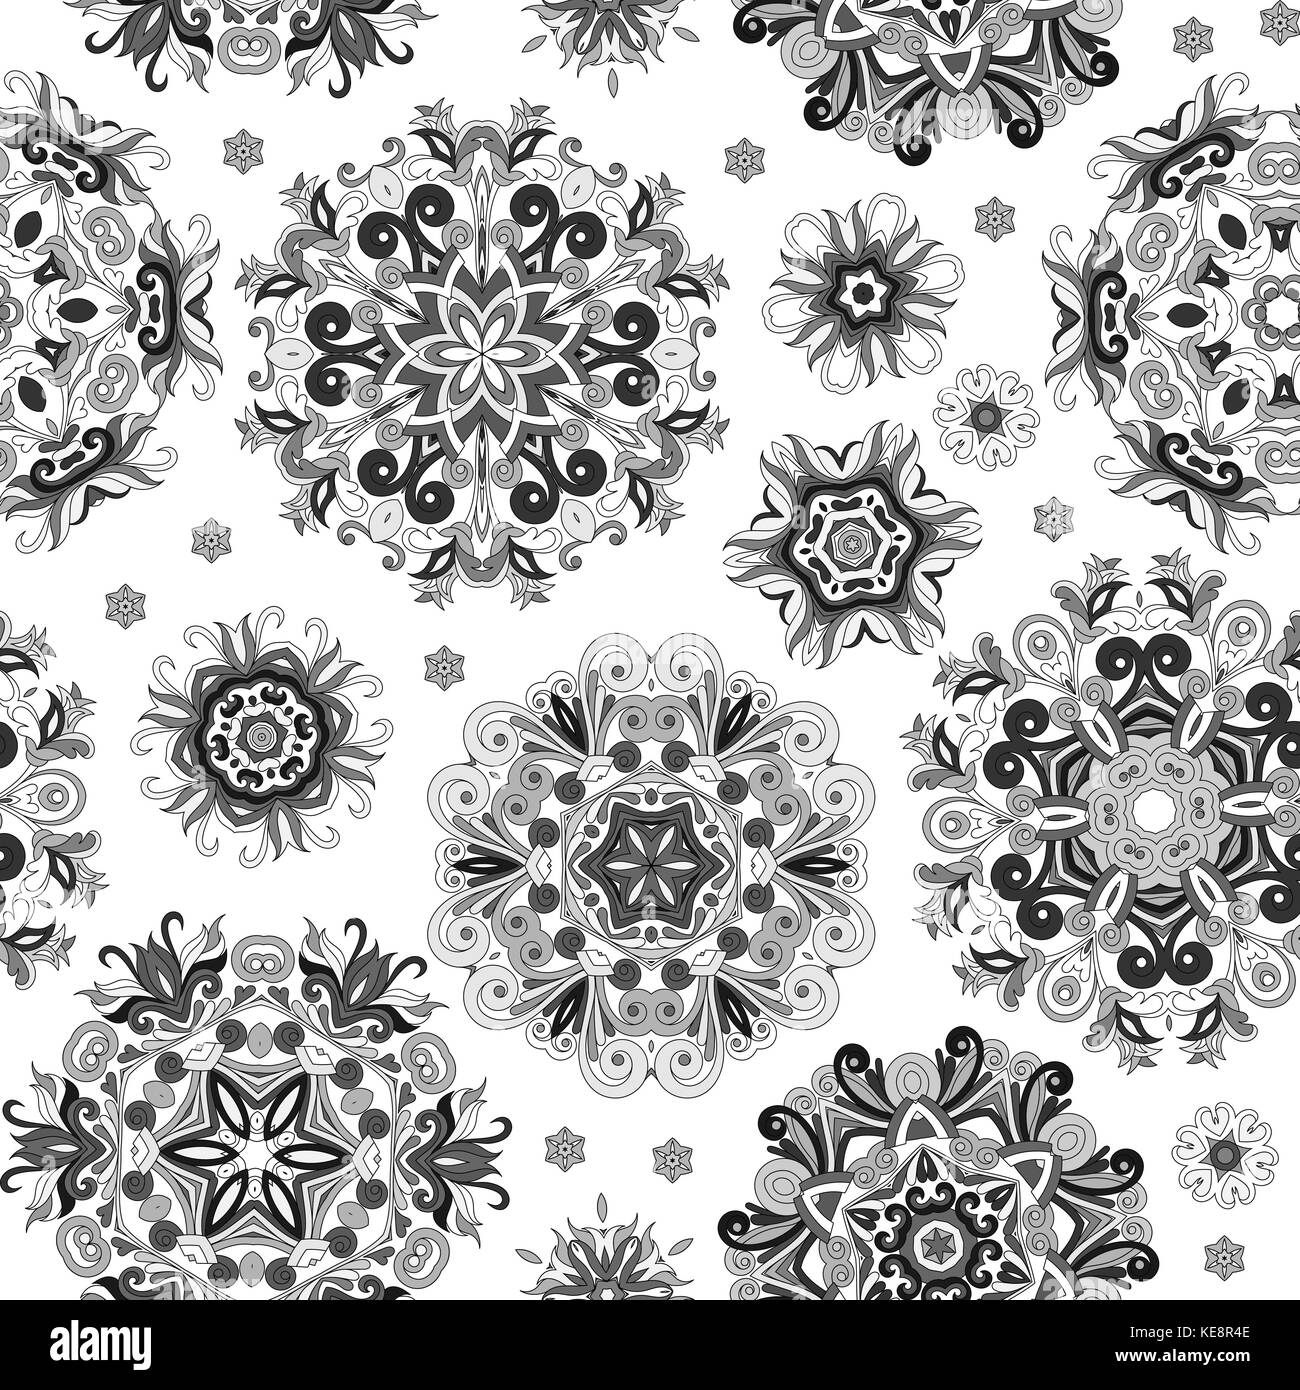 Floral seamless pattern with stylized snowflakes. Gray snowflake on white background. Black and white print. - Stock Image